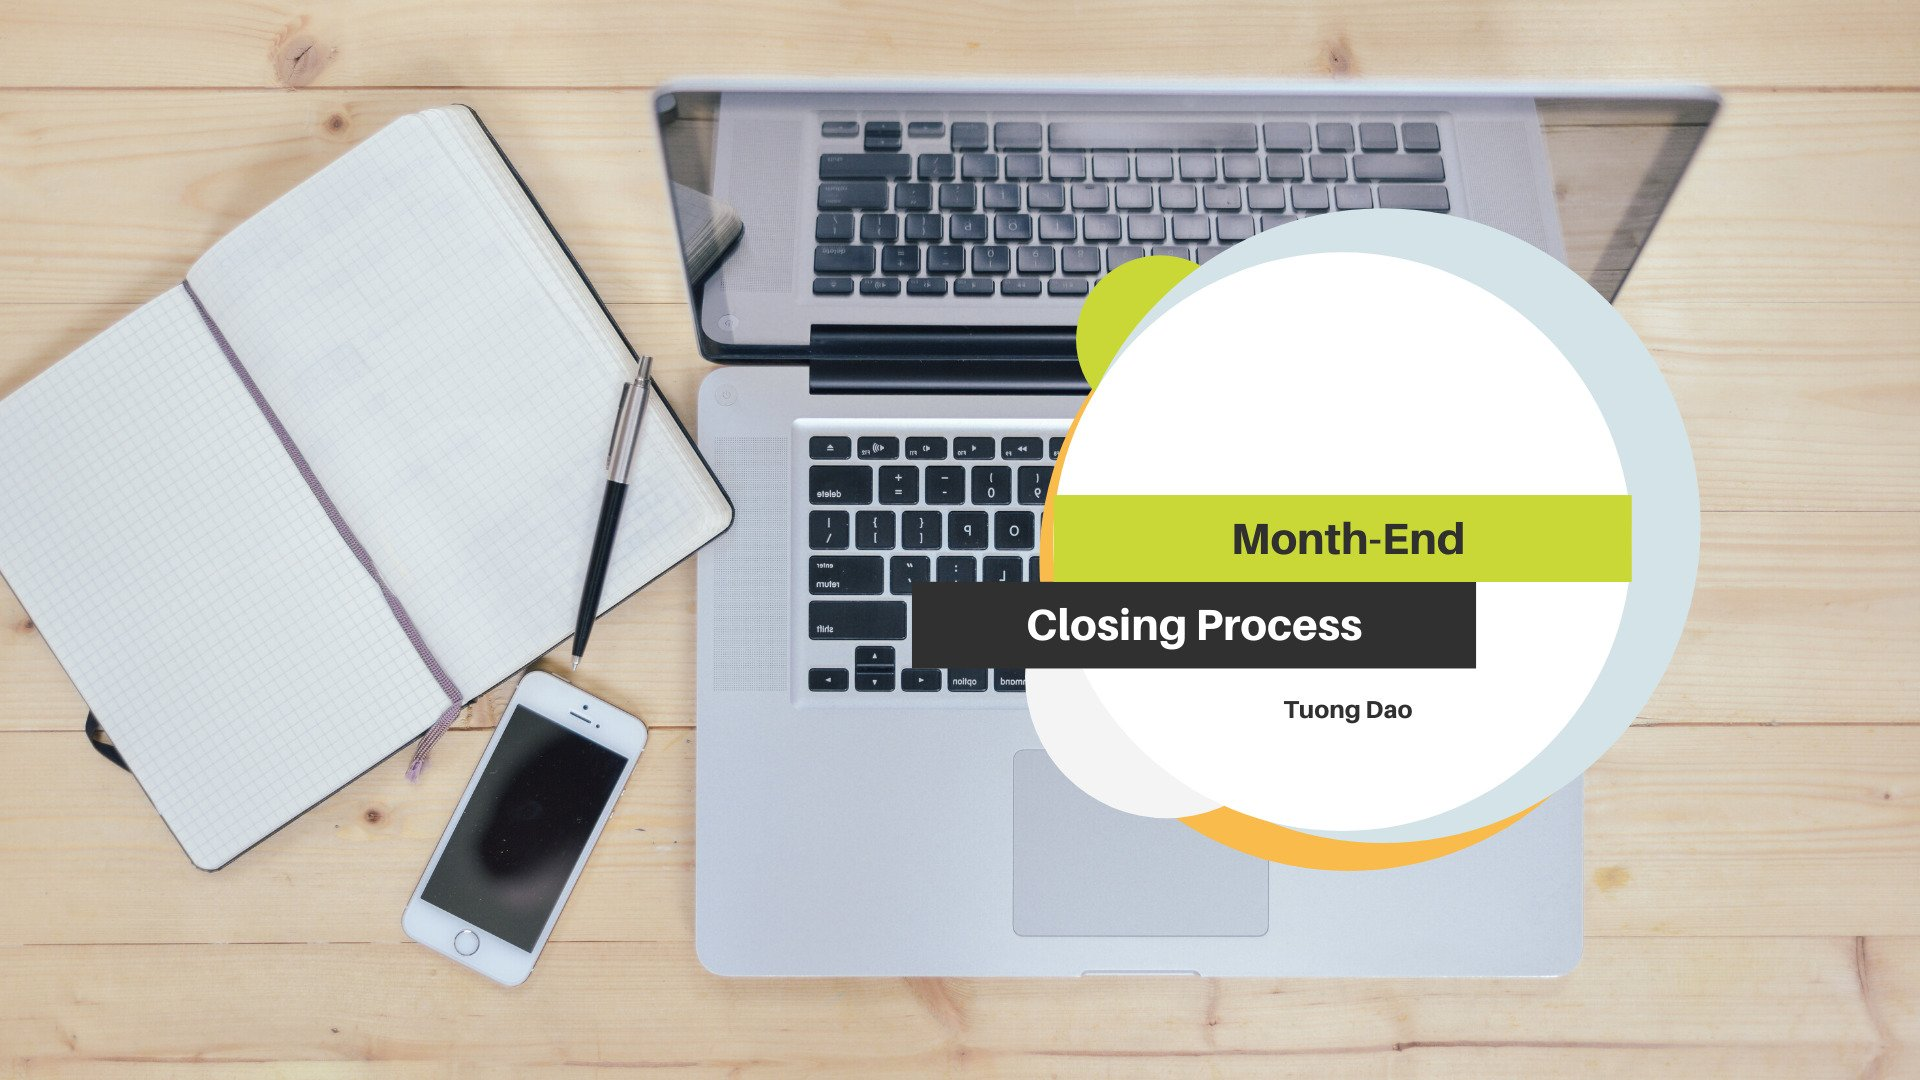 Month-End Closing Process